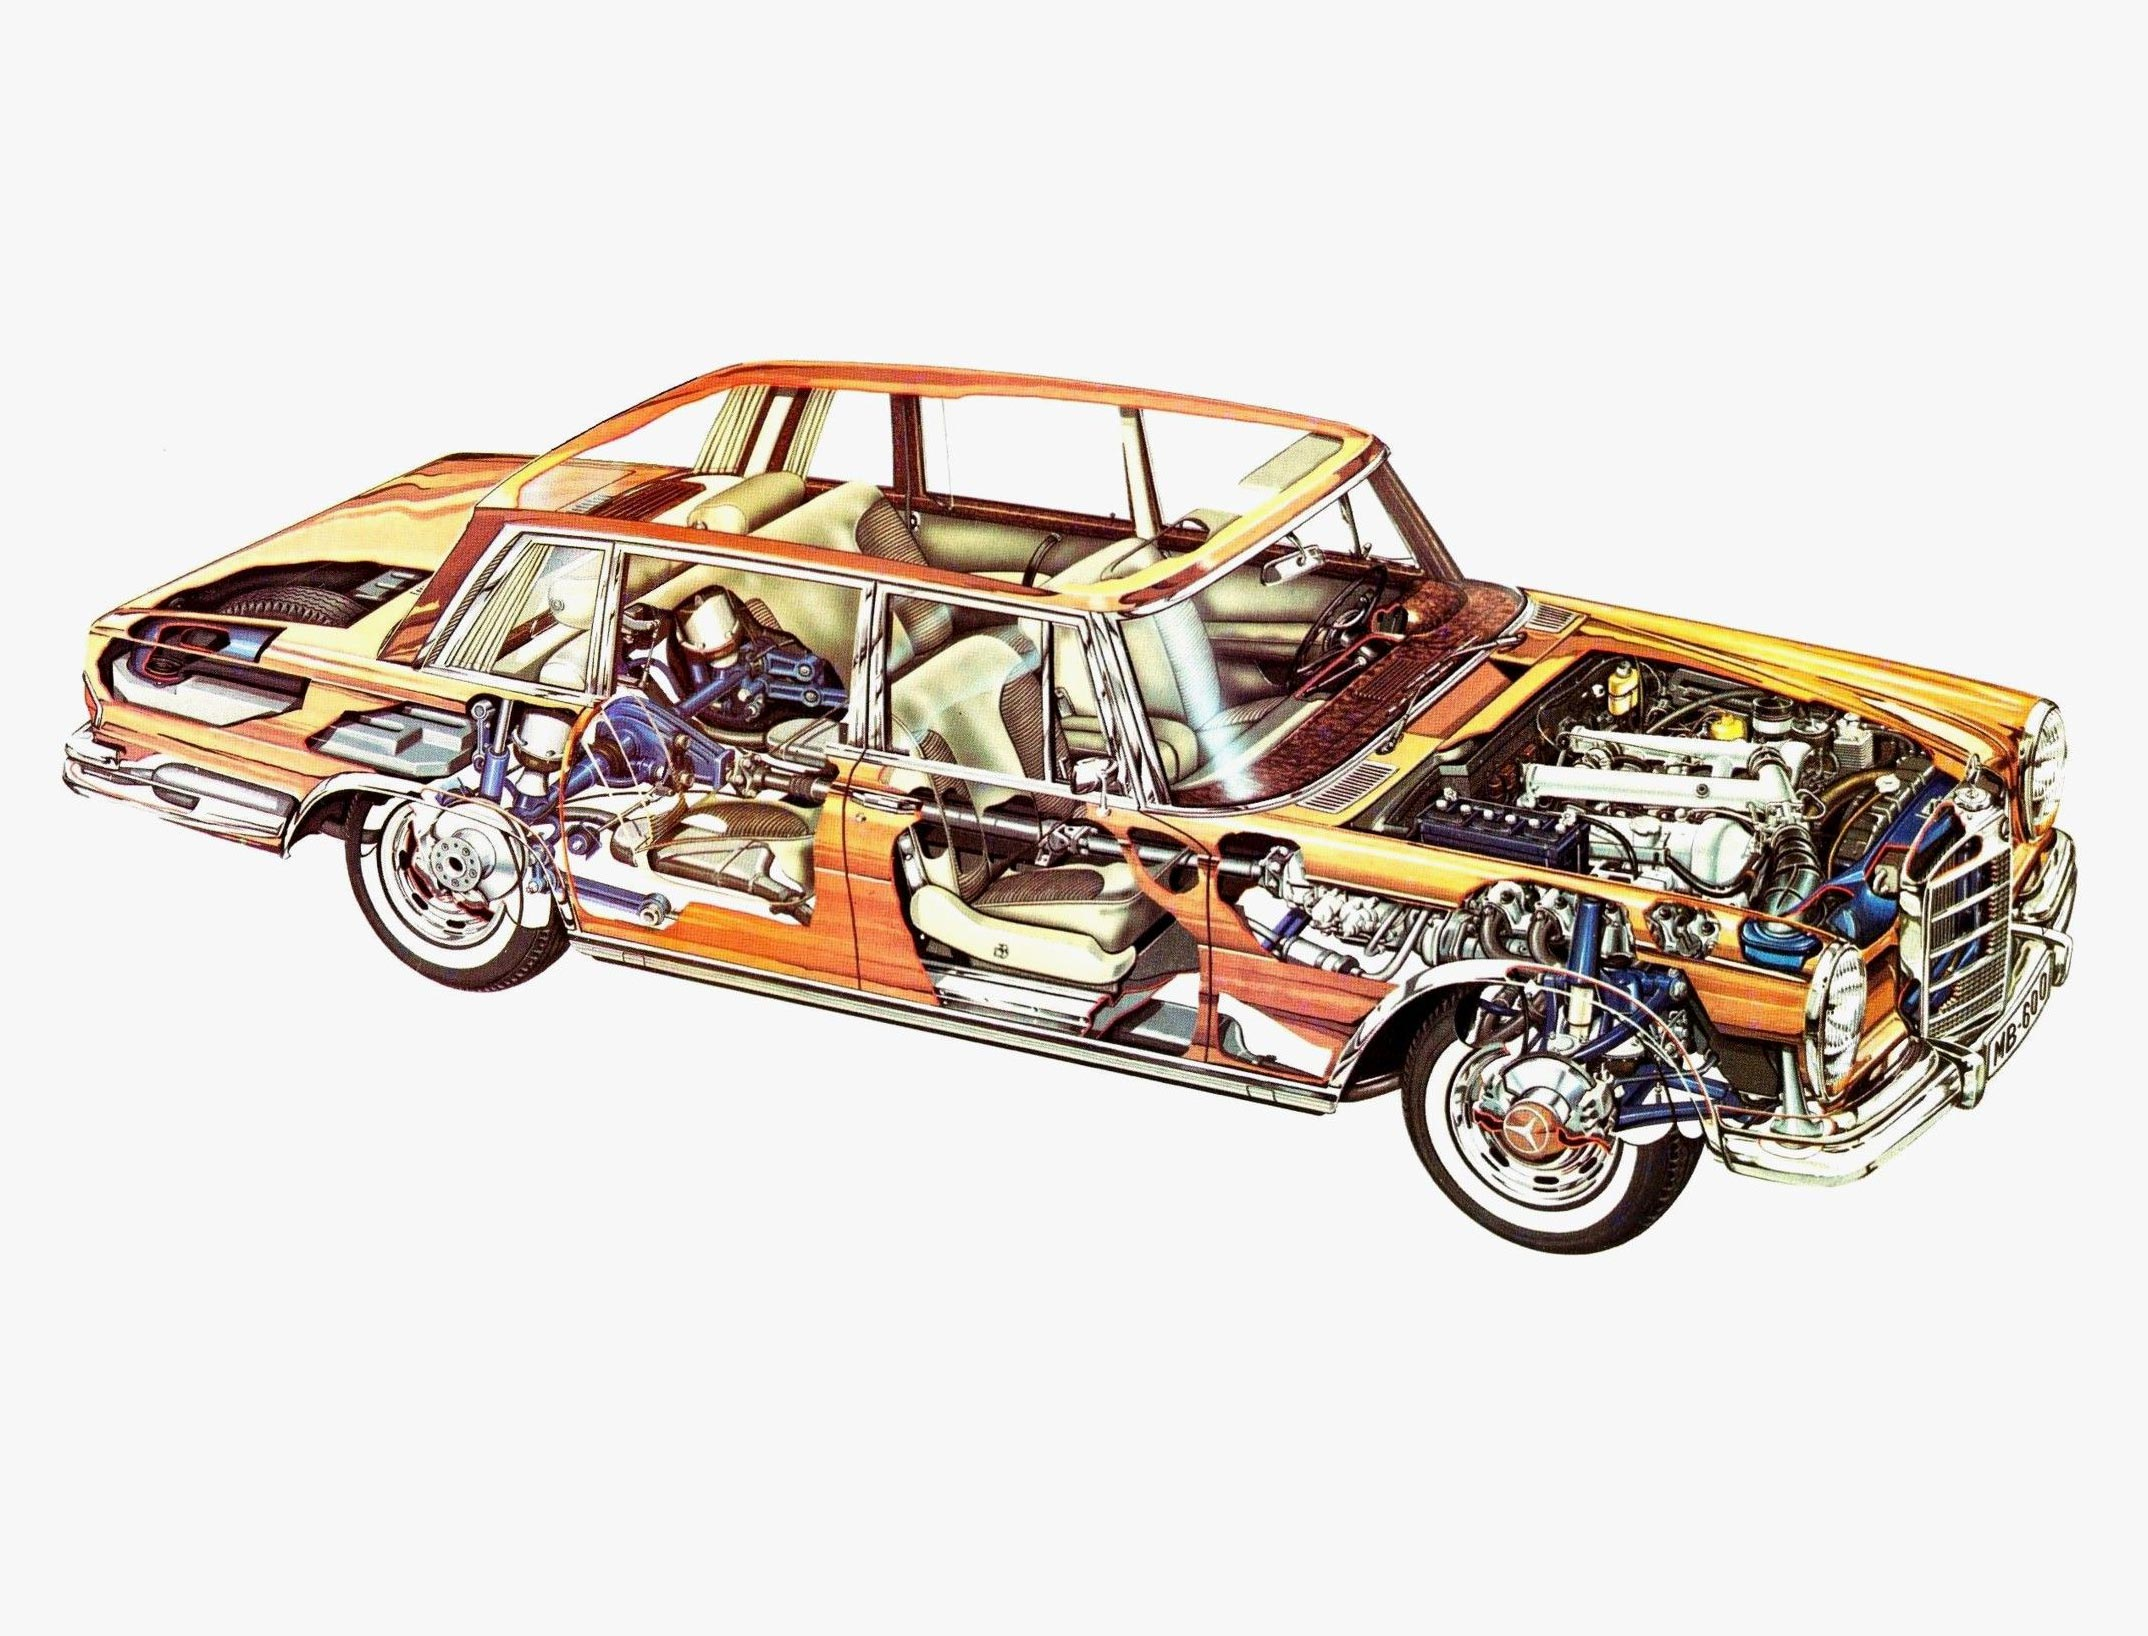 Mercedes-Benz 600 cutaway drawing